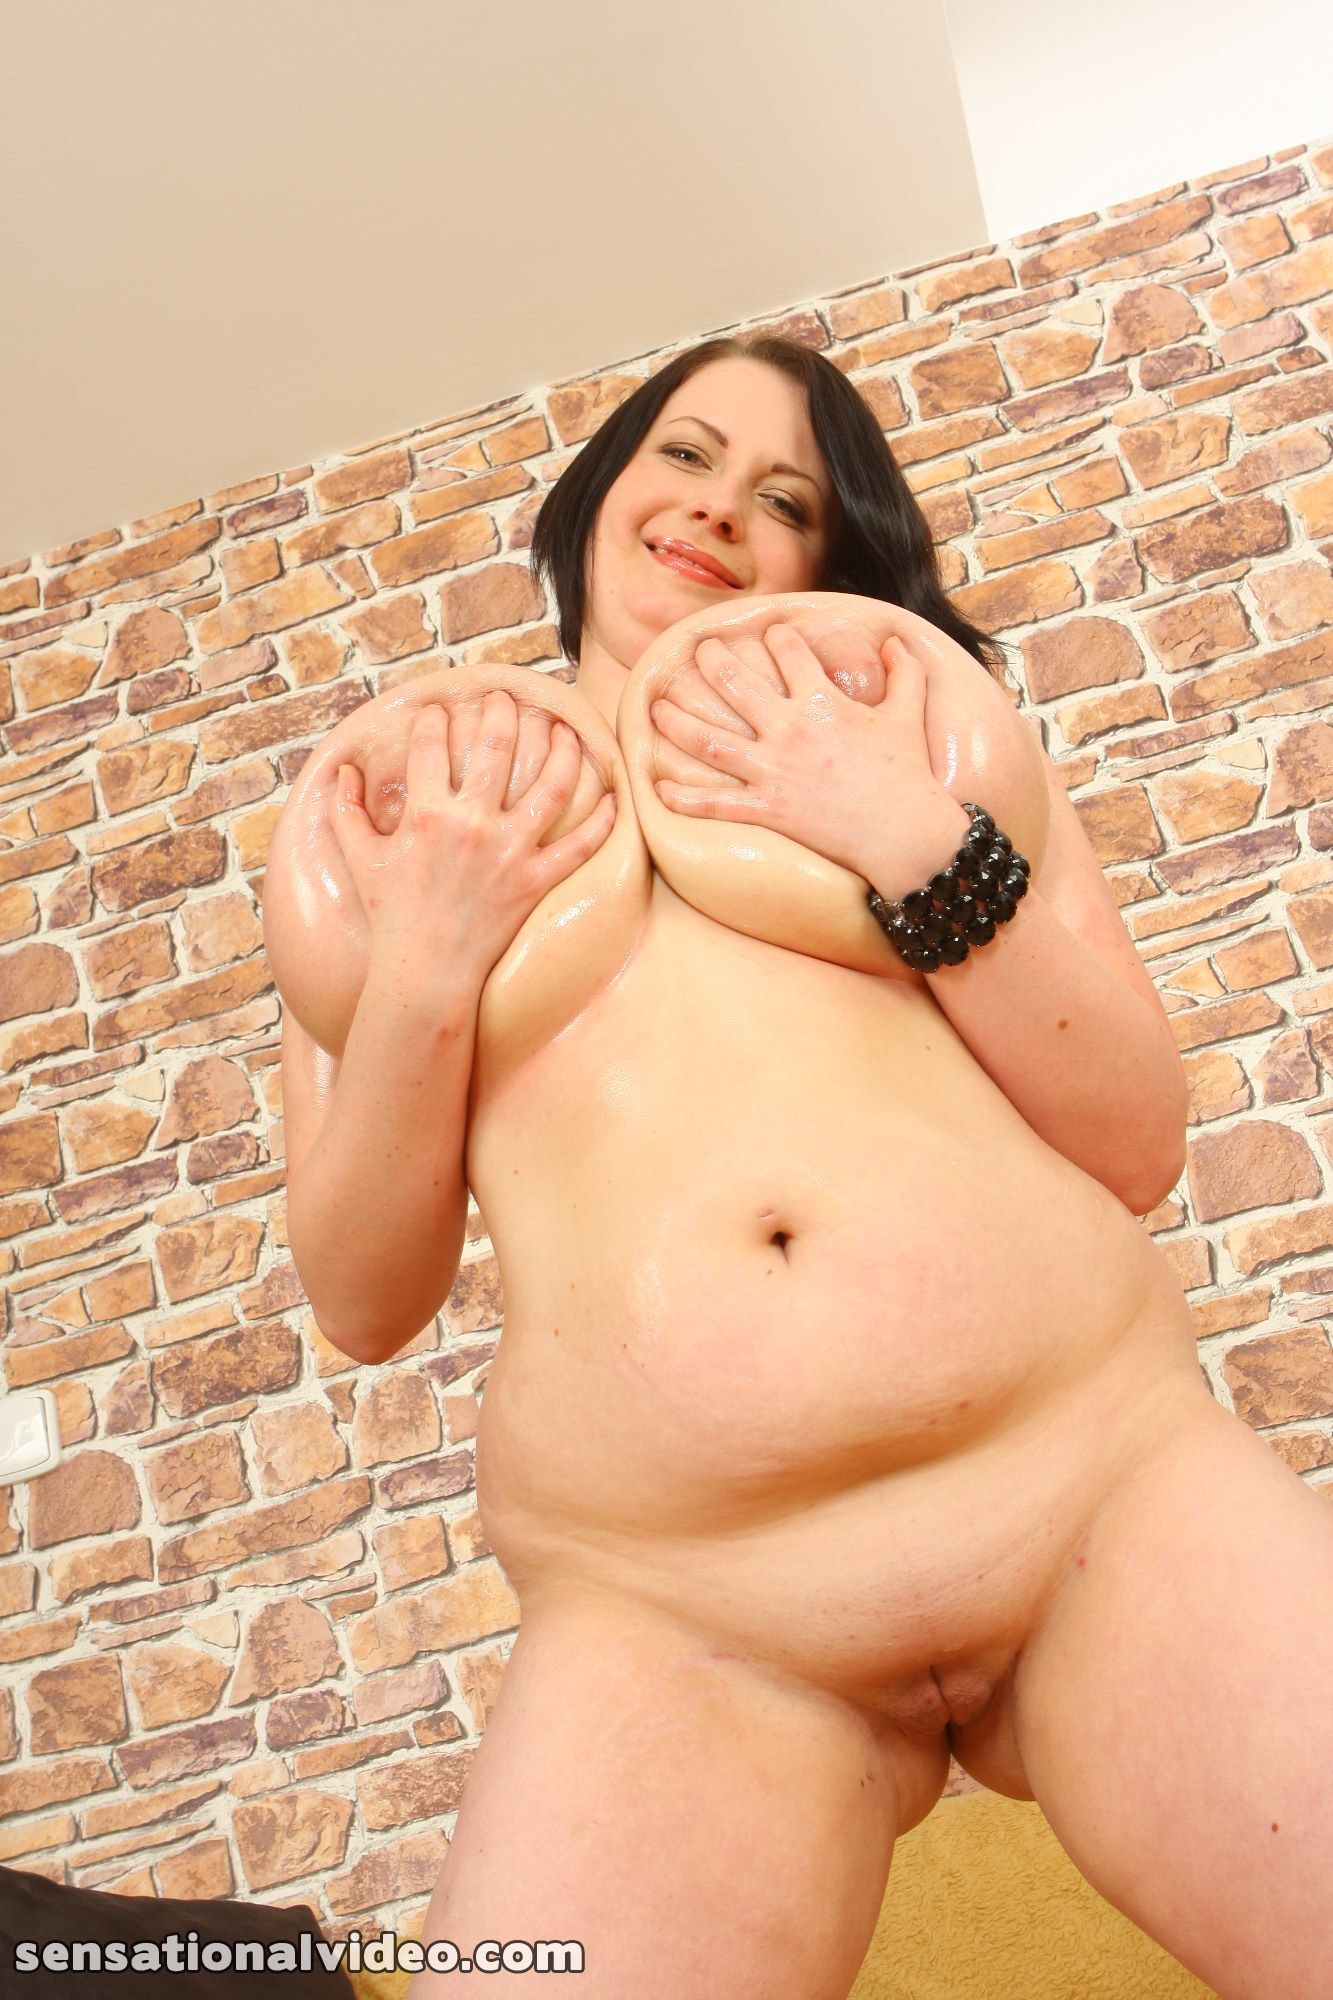 lesgalls spicytitties plumperpass gal535 pic 25